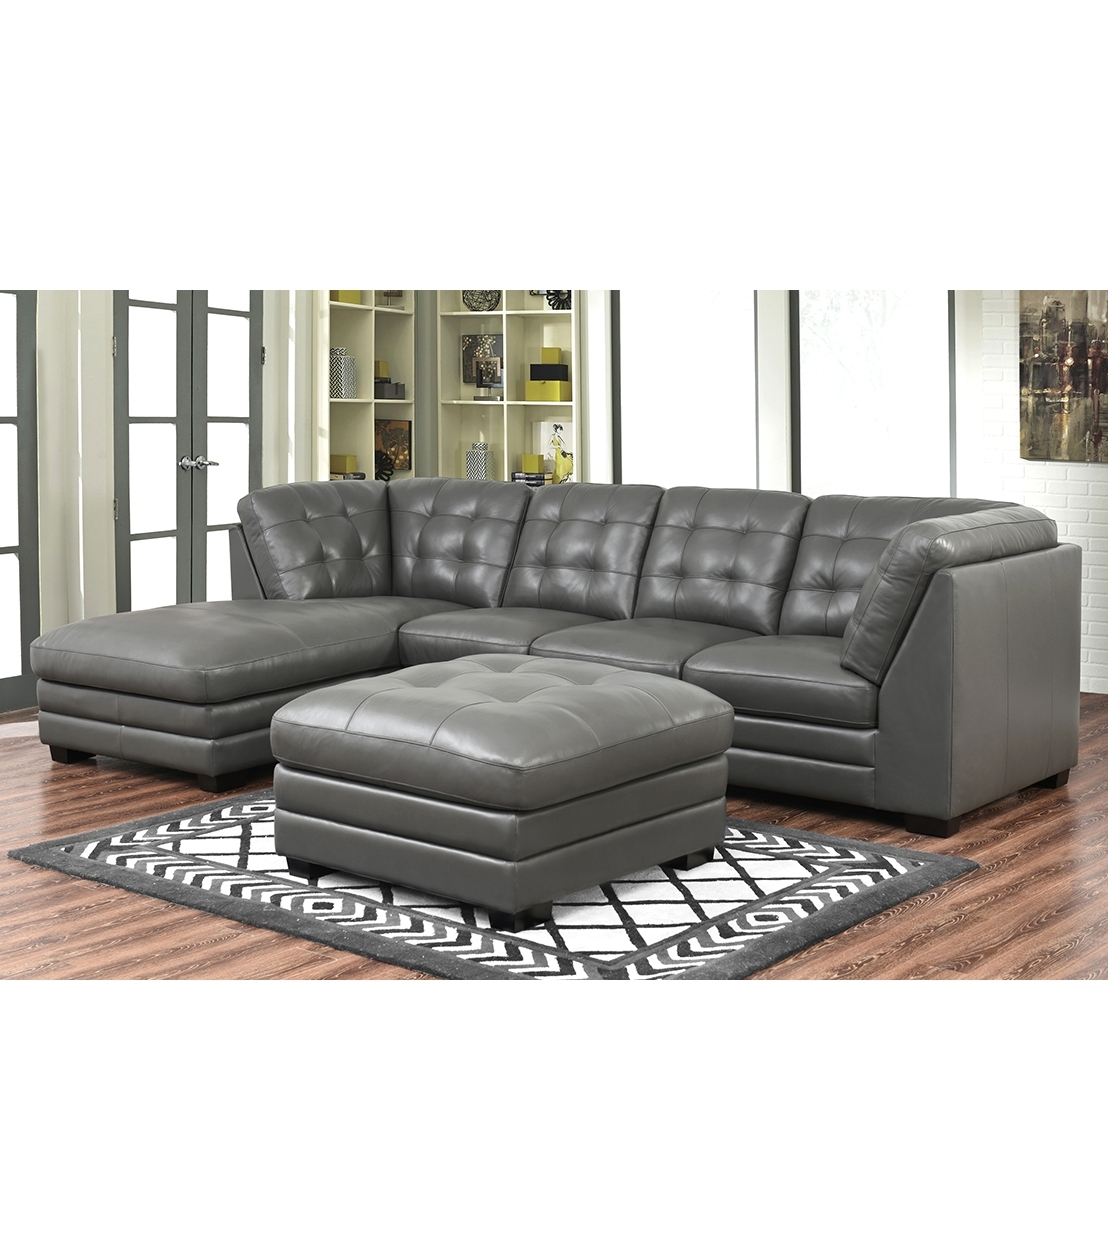 Sectionals : Lawrence Top Grain Leather Sectional With Ottoman Pertaining To Favorite Leather Sectionals With Ottoman (View 13 of 15)